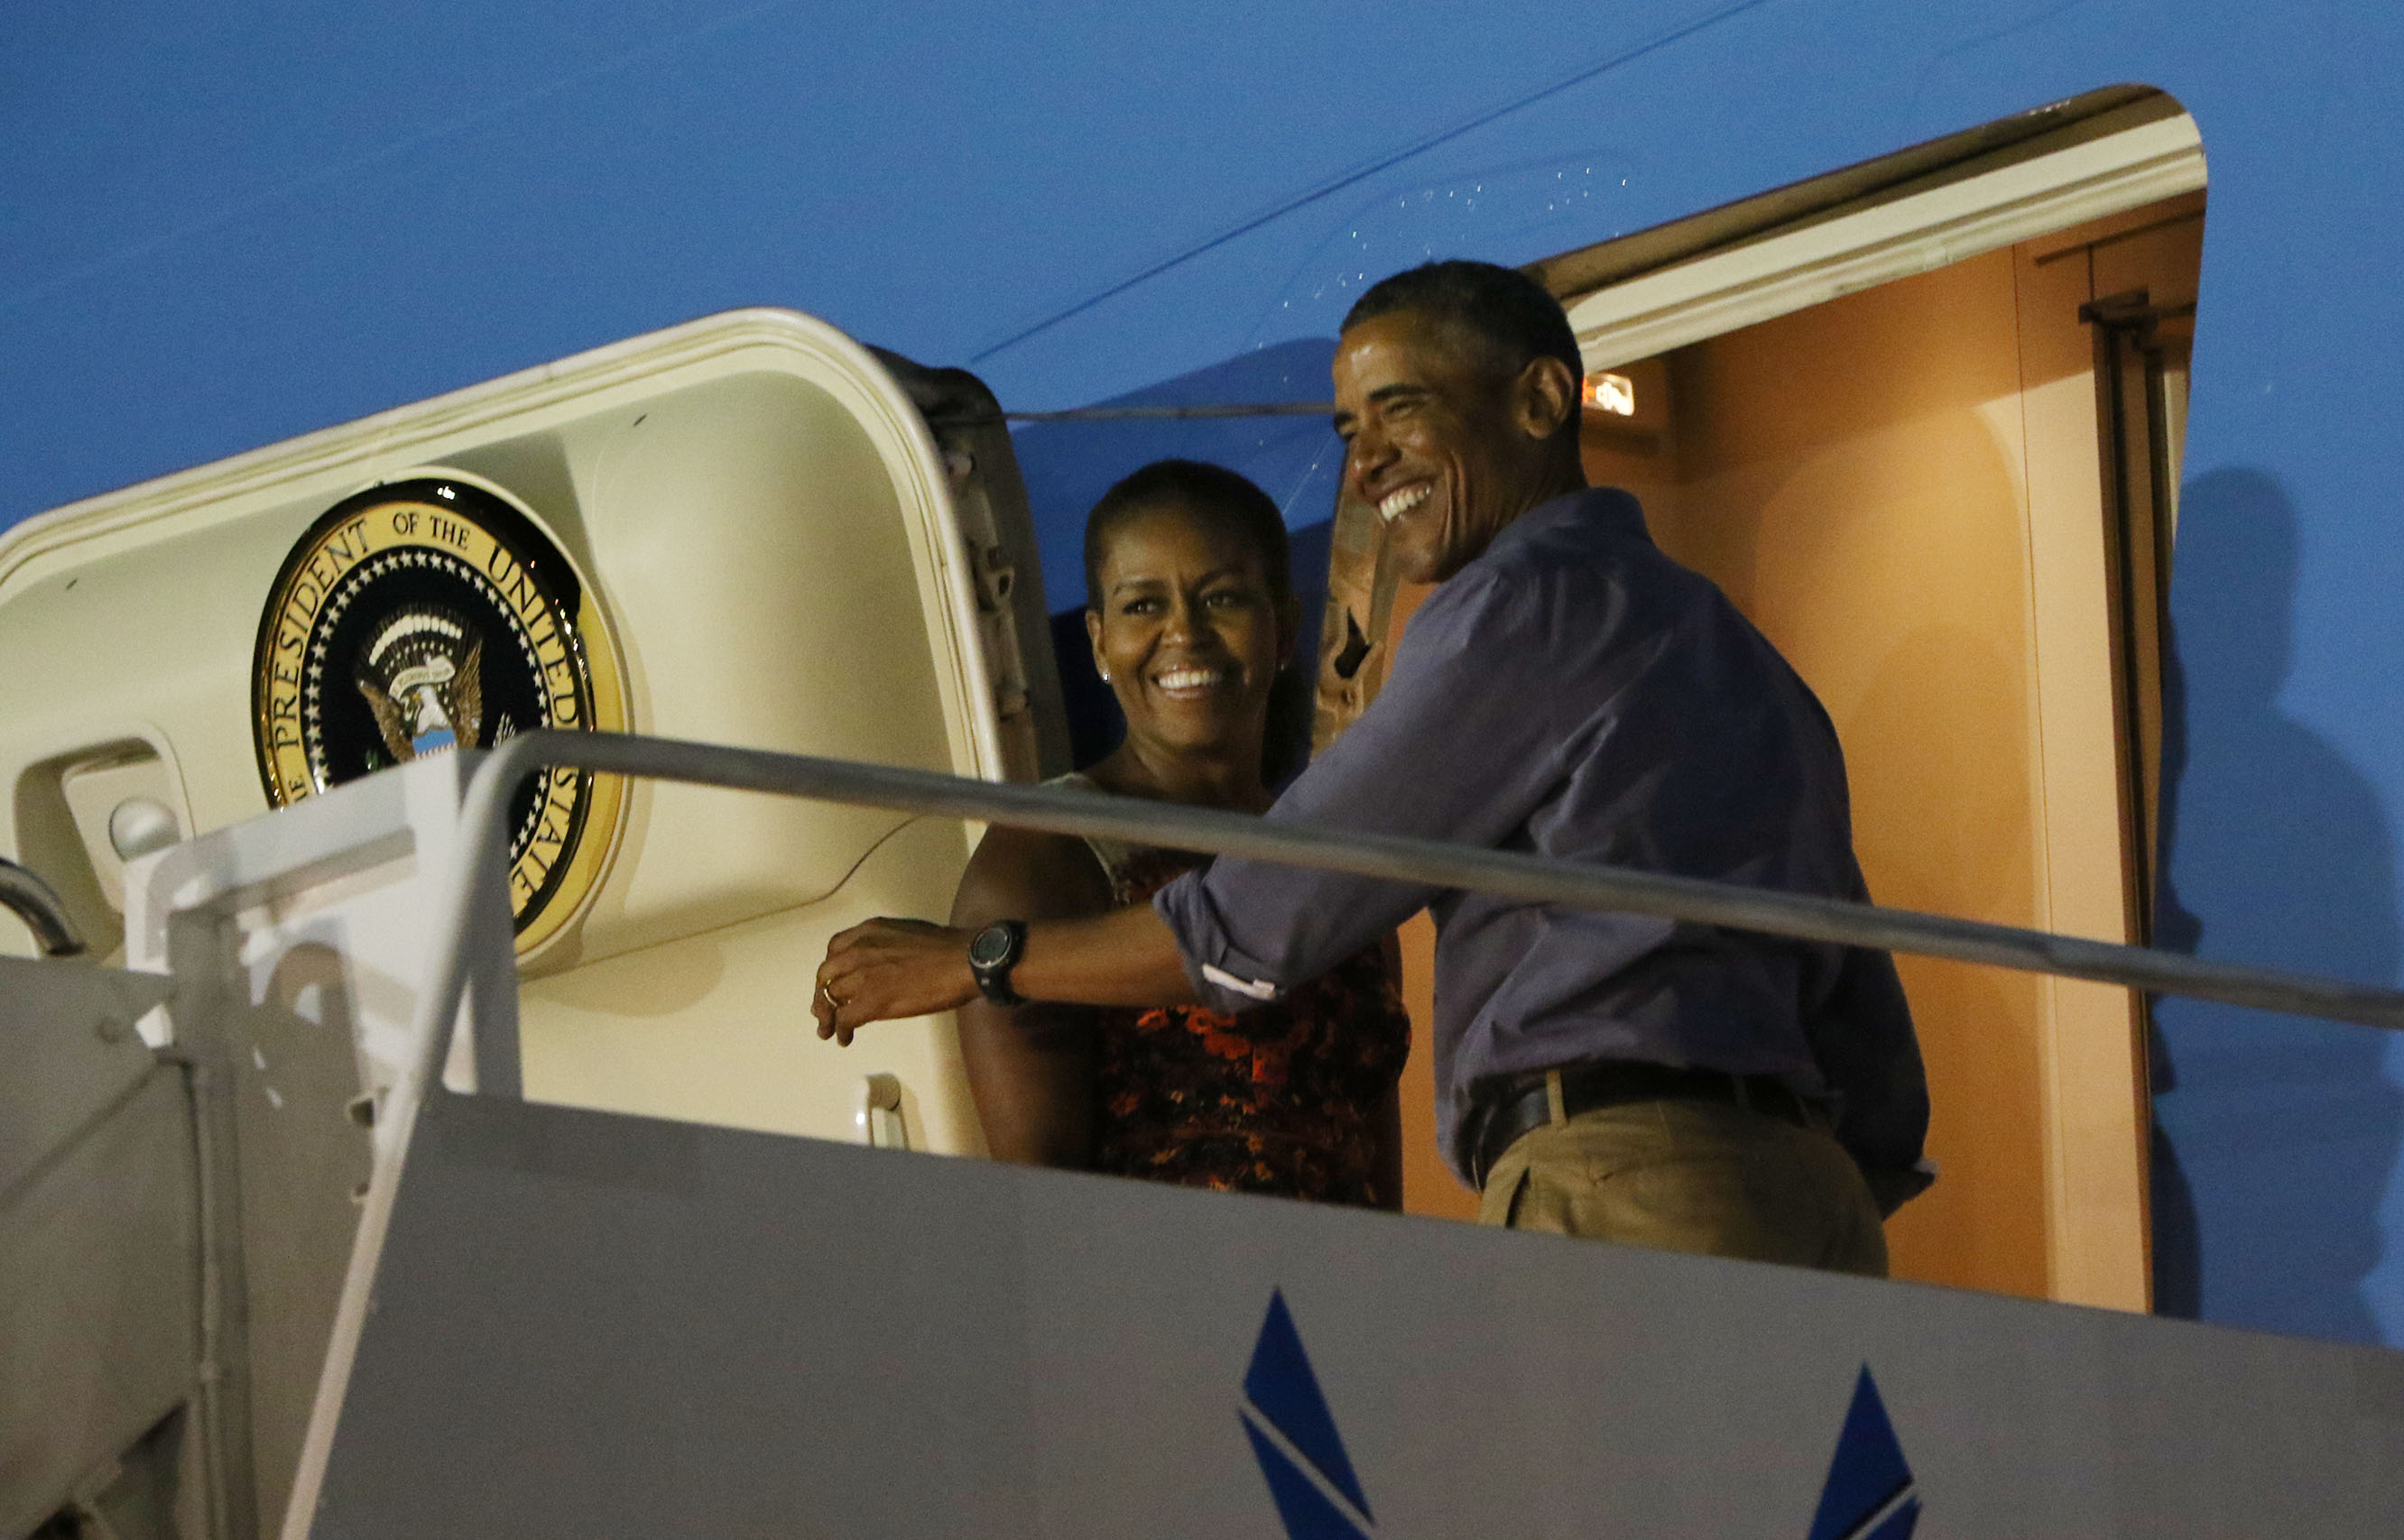 President Obama and First Lady Michelle Obama smile at well-wishers as they board Air Force One and end their 16-day holiday vacation on Oahu.